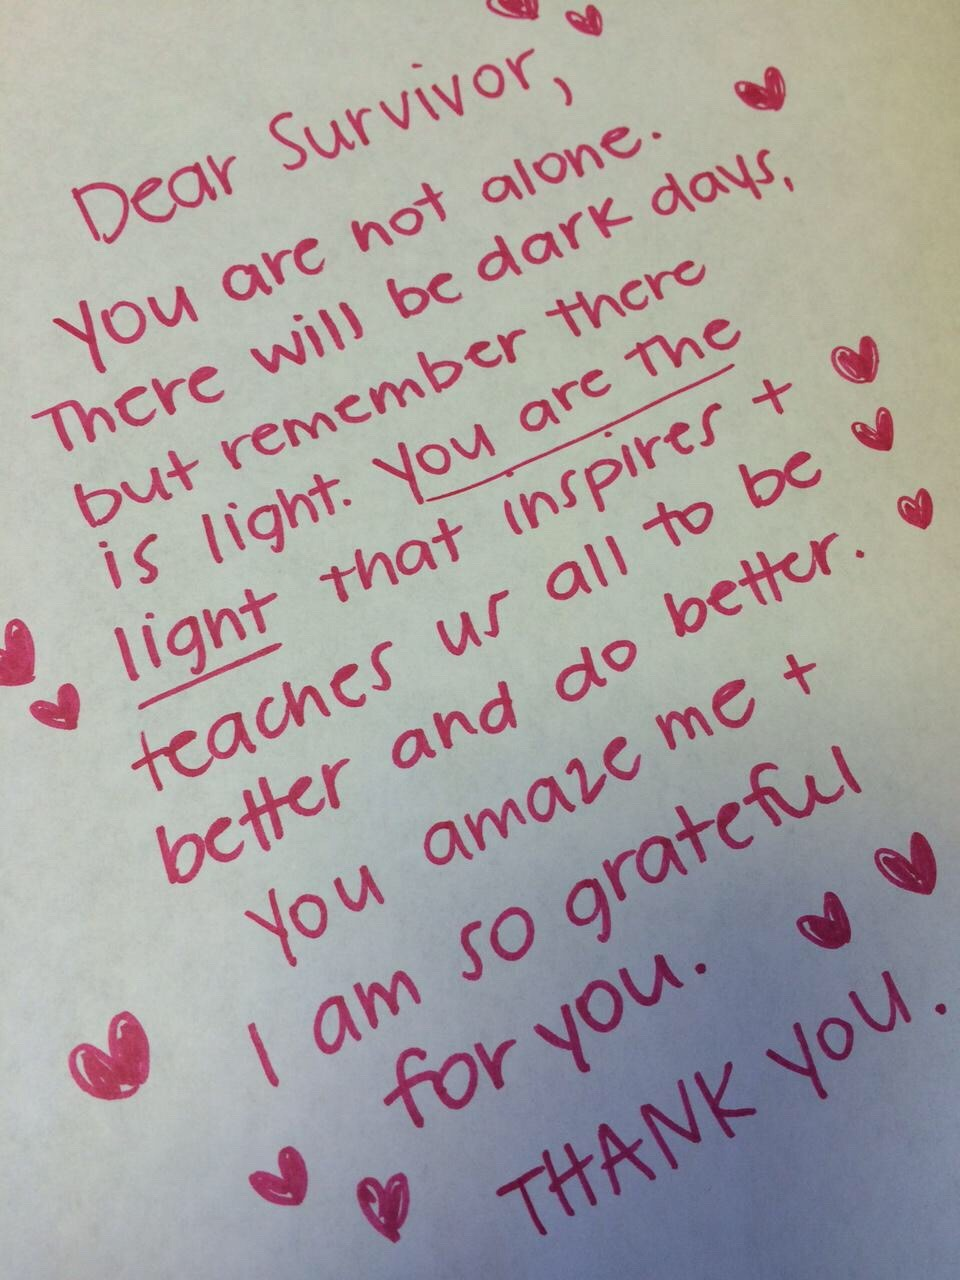 Dear Survivor,  You are not alone. There will be dark days, but remember that there is light, You are the light that inspires & teaches us all to be better and do better. You amaze me & I am so grateful for you.  THANK YOU.